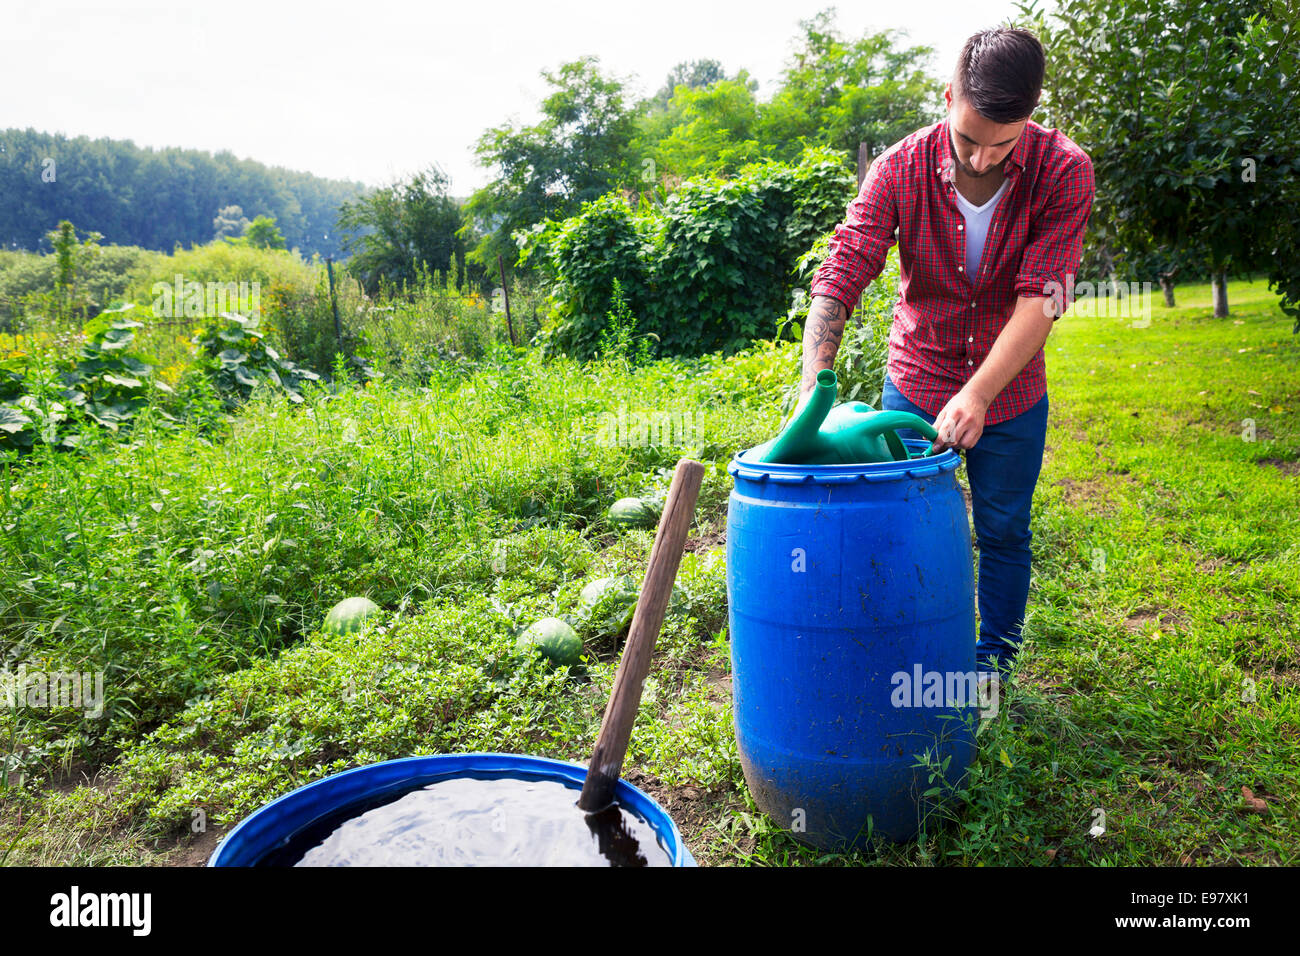 Young man filling watering can at barrel - Stock Image